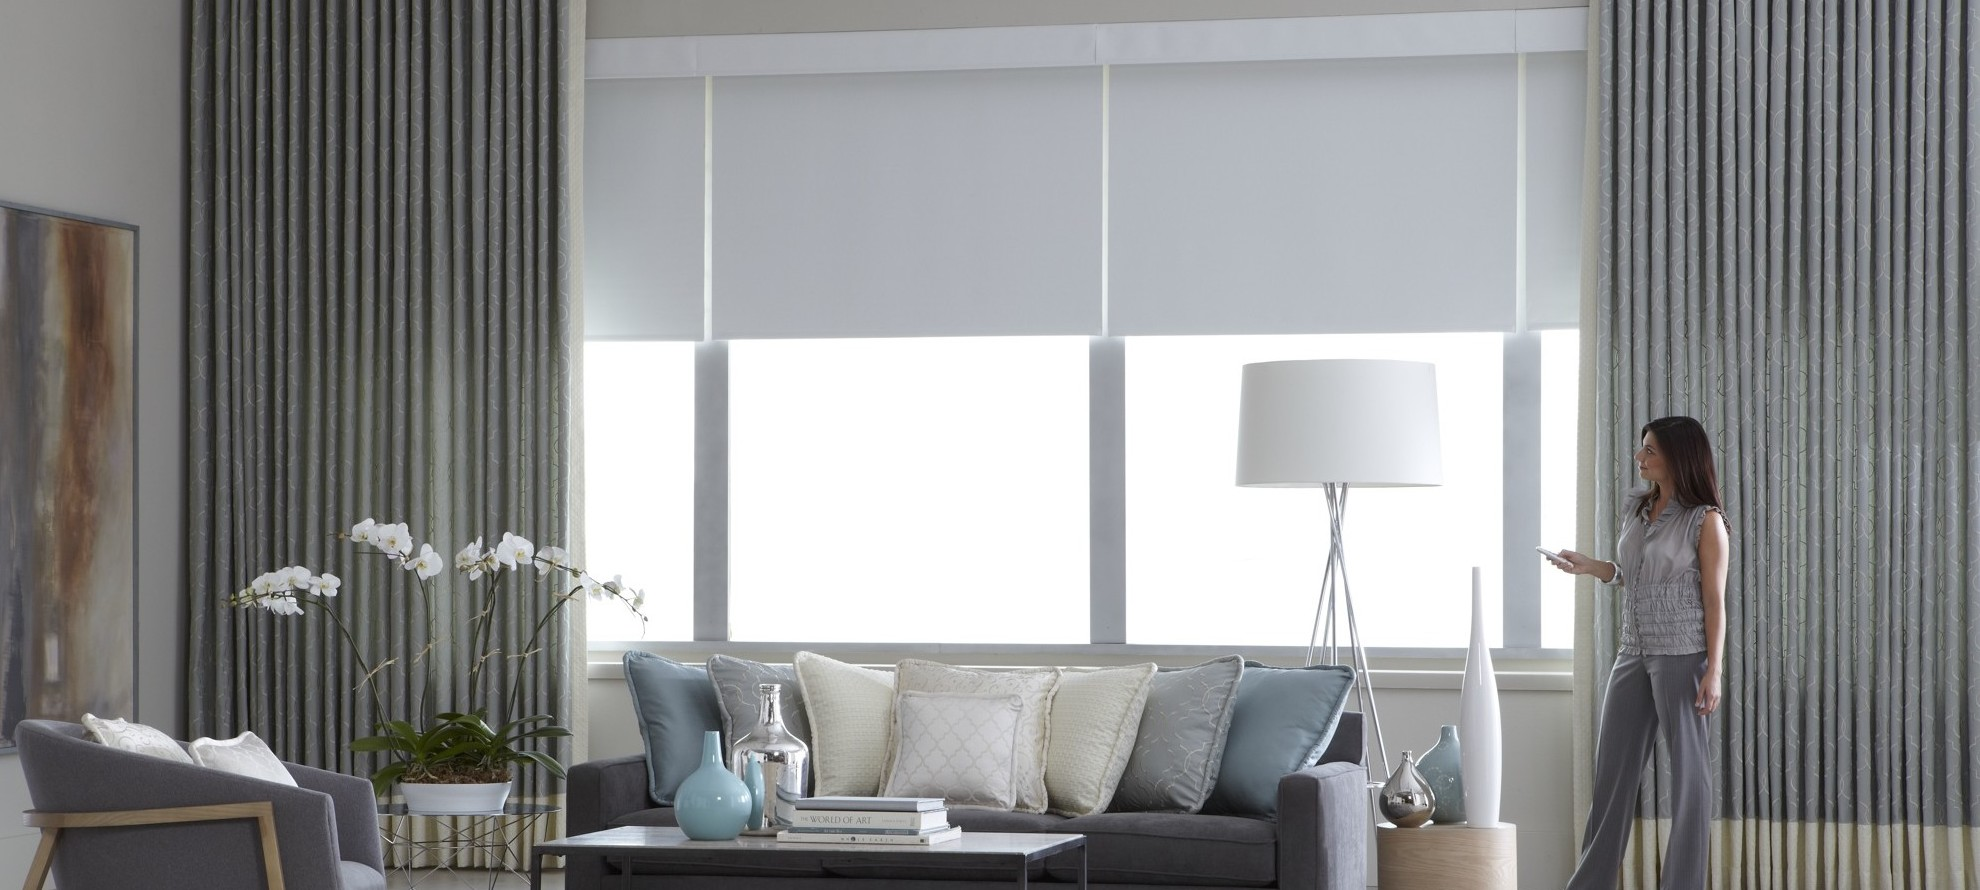 motorized shades and blinds in boston shades in place